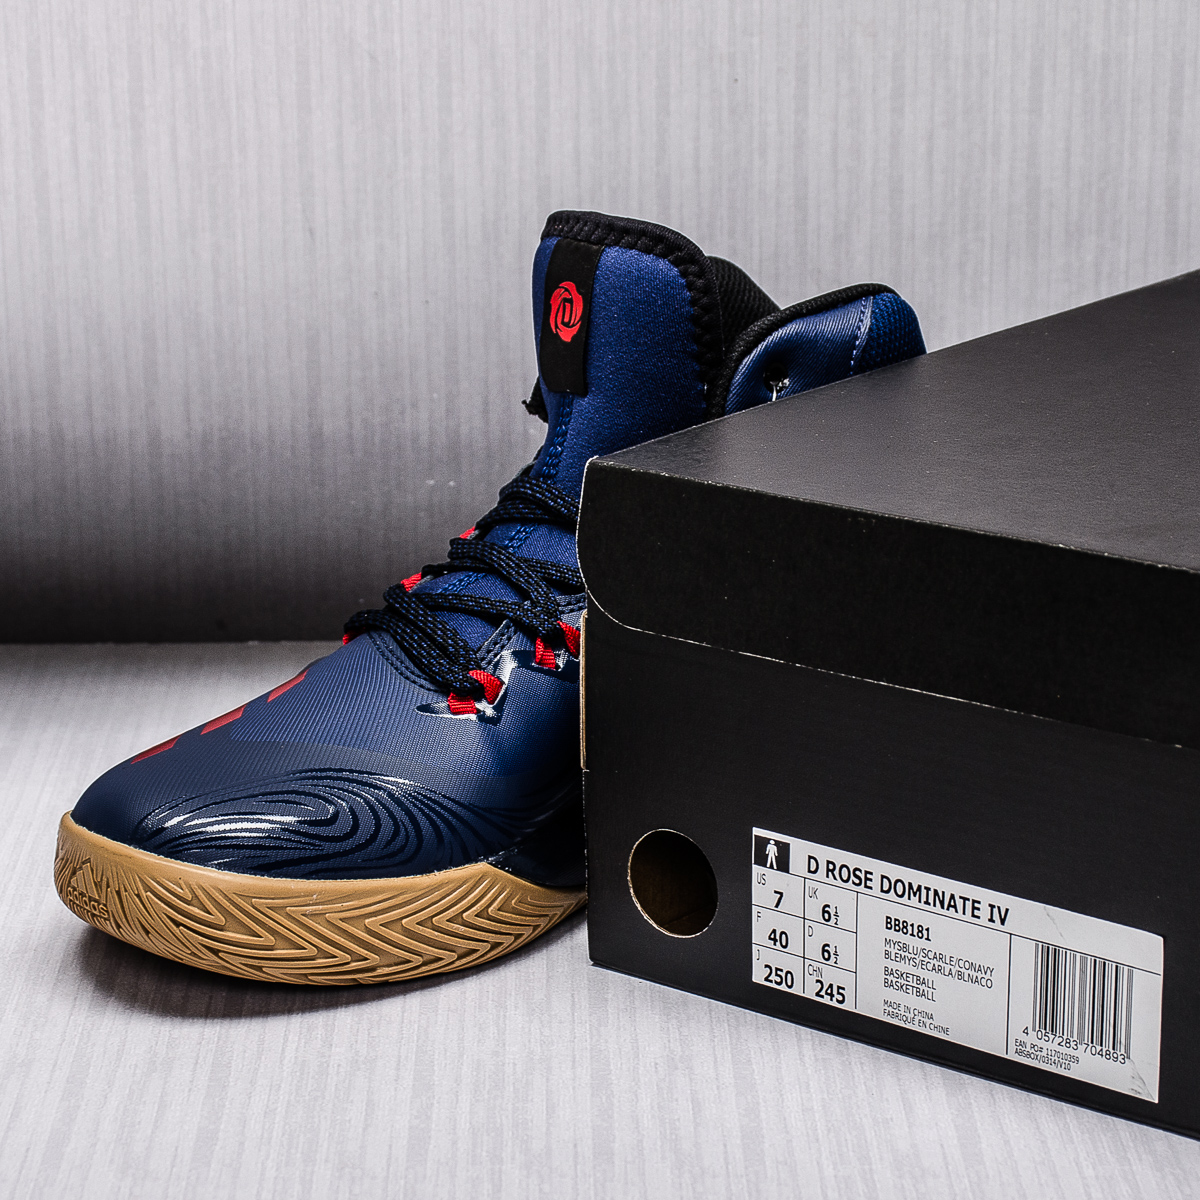 online store 2f37f 94a82 adidas D Rose Dominate IV Basketball Shoes